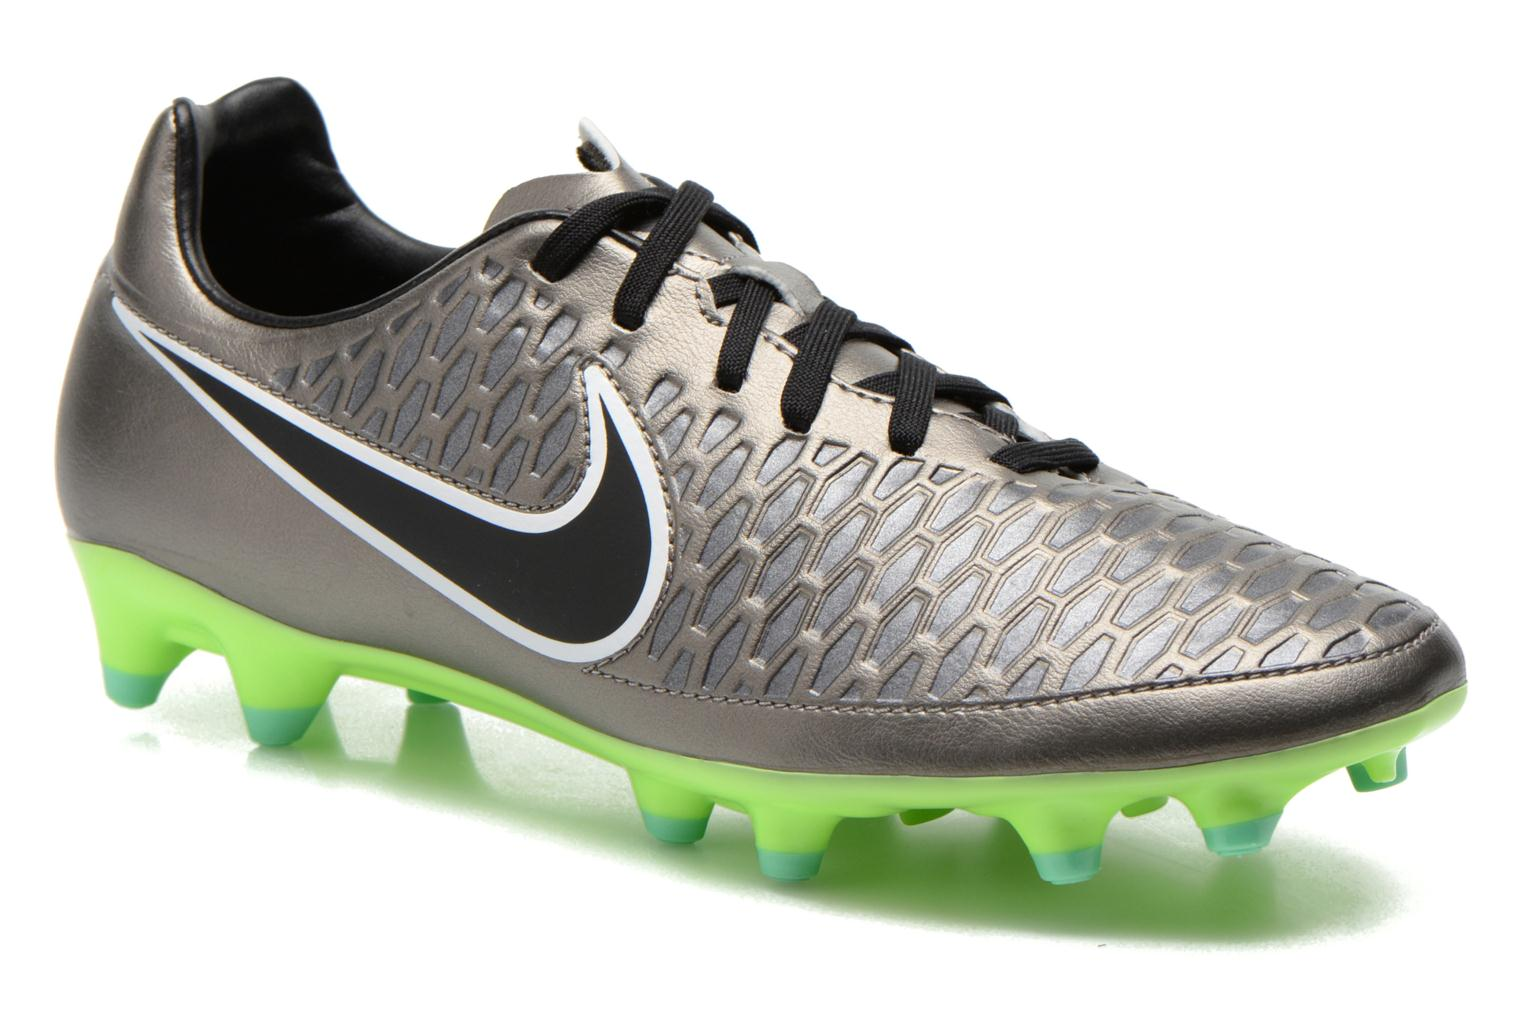 f50e9198400c ... coupon code for sport shoes nike magista onda fg grey detailed view  pair view 481ca d123d